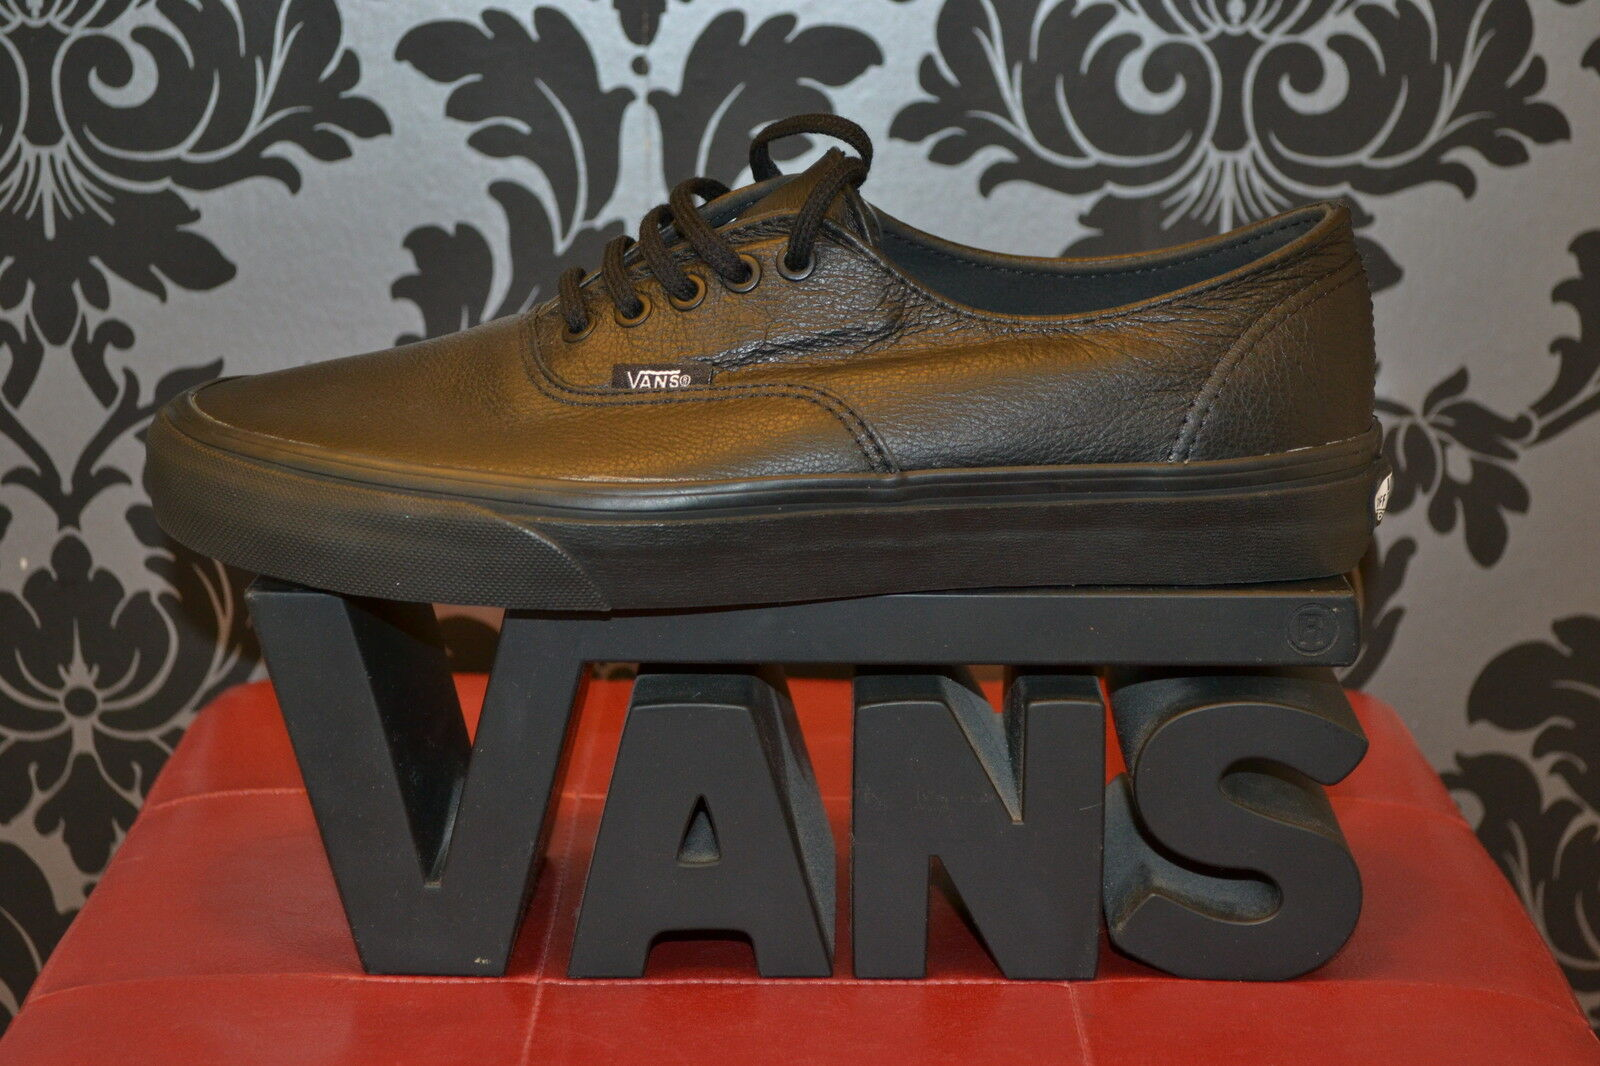 BNIB VANS AUTHENTIC TRAINERS/SNEAKERS TO BLACK MONO LEATHER LACE UP,UK 3 TO TRAINERS/SNEAKERS 11 a9a0bb